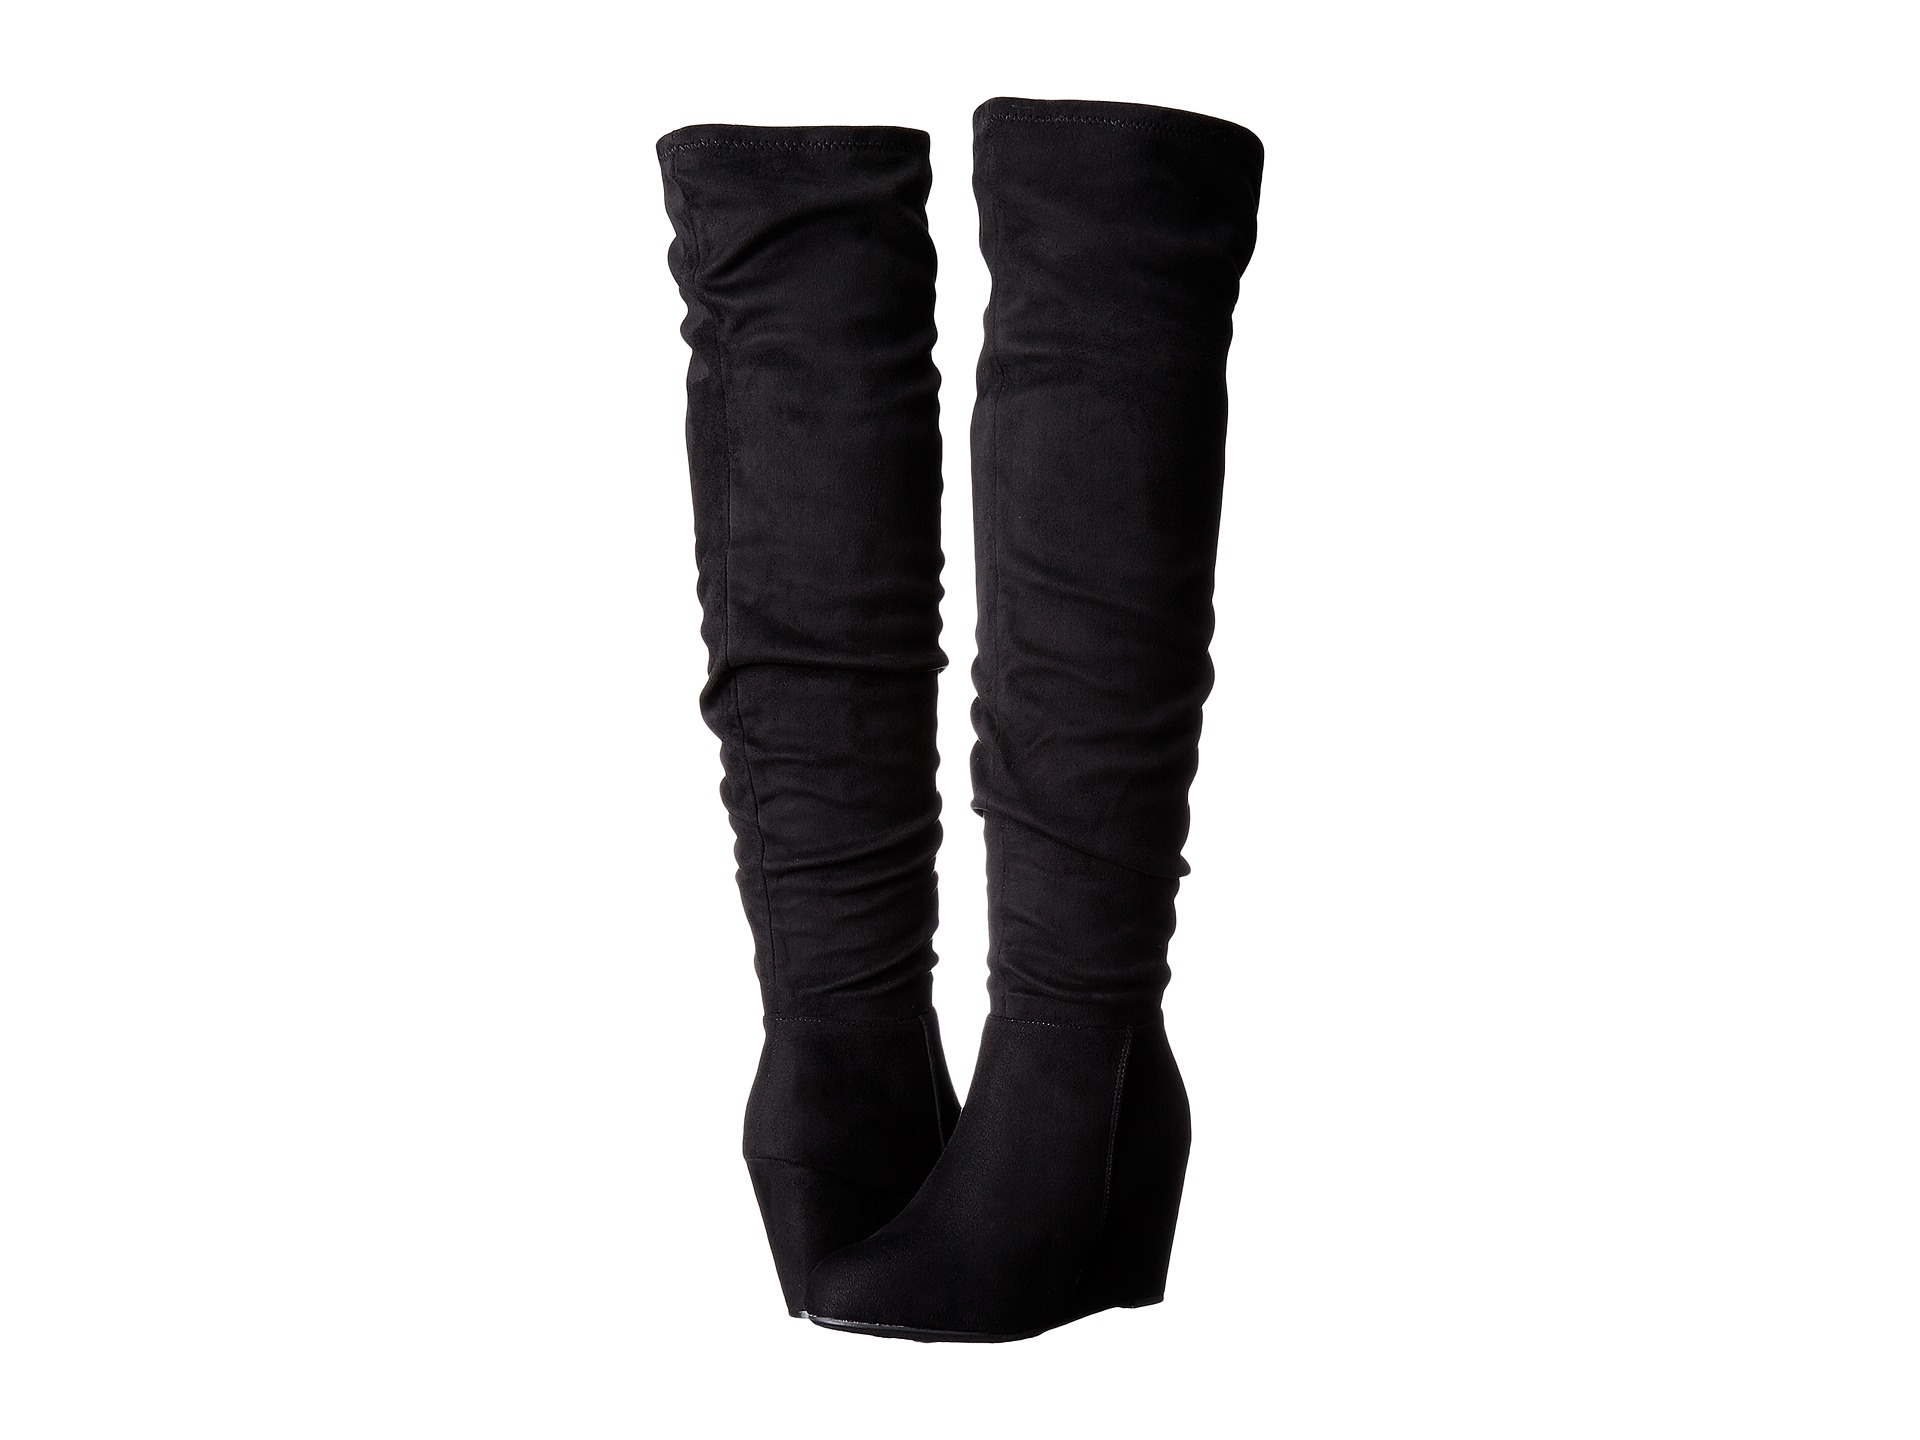 Thigh High Boots - Women's Boots | Free Shipping at Zappos